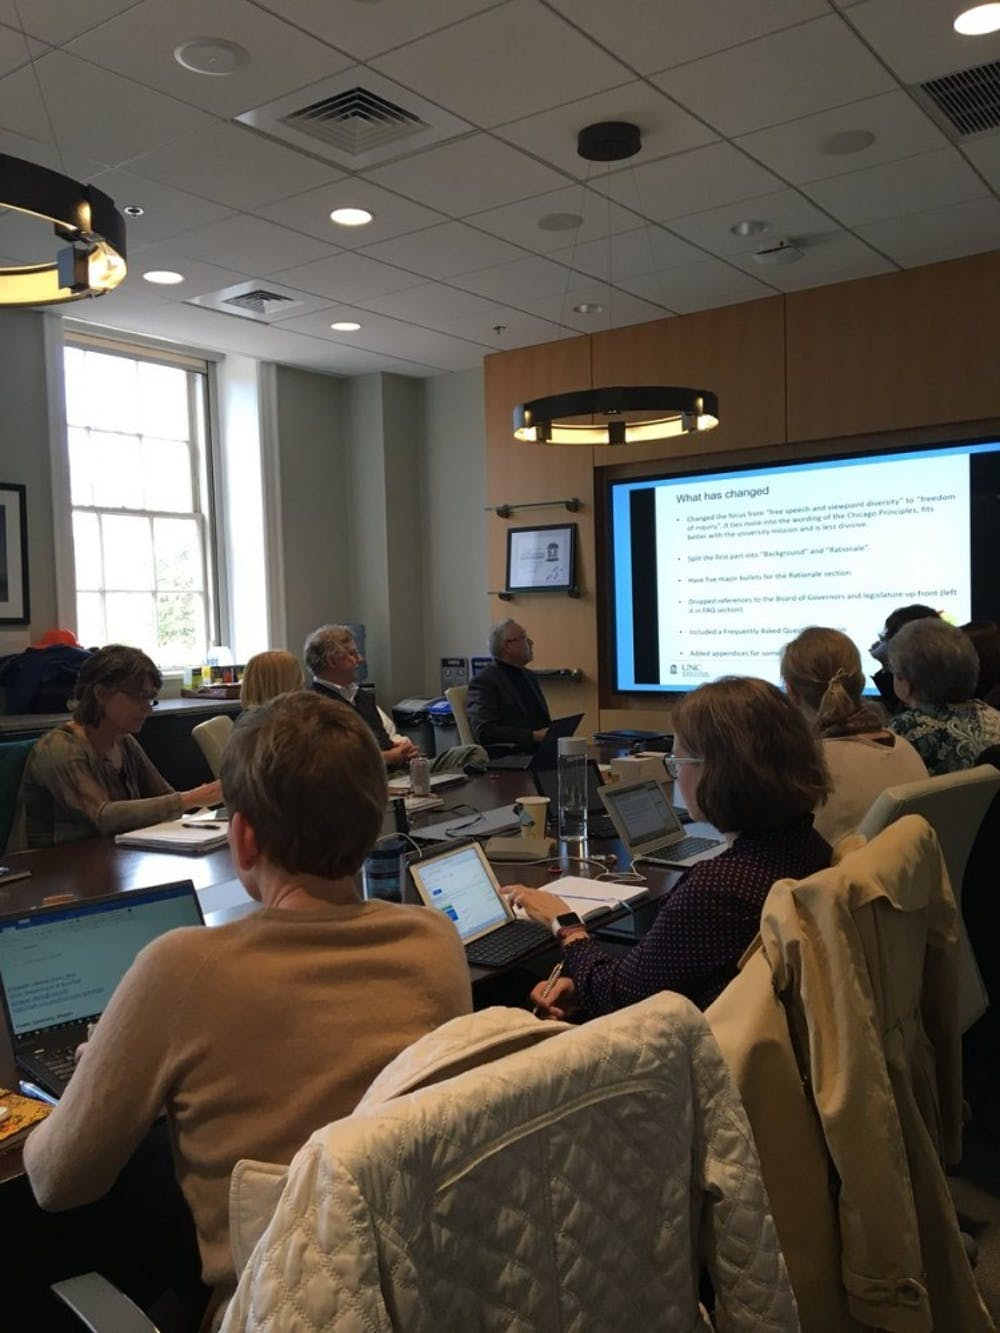 Budget and free speech policy under review by Faculty Executive Council